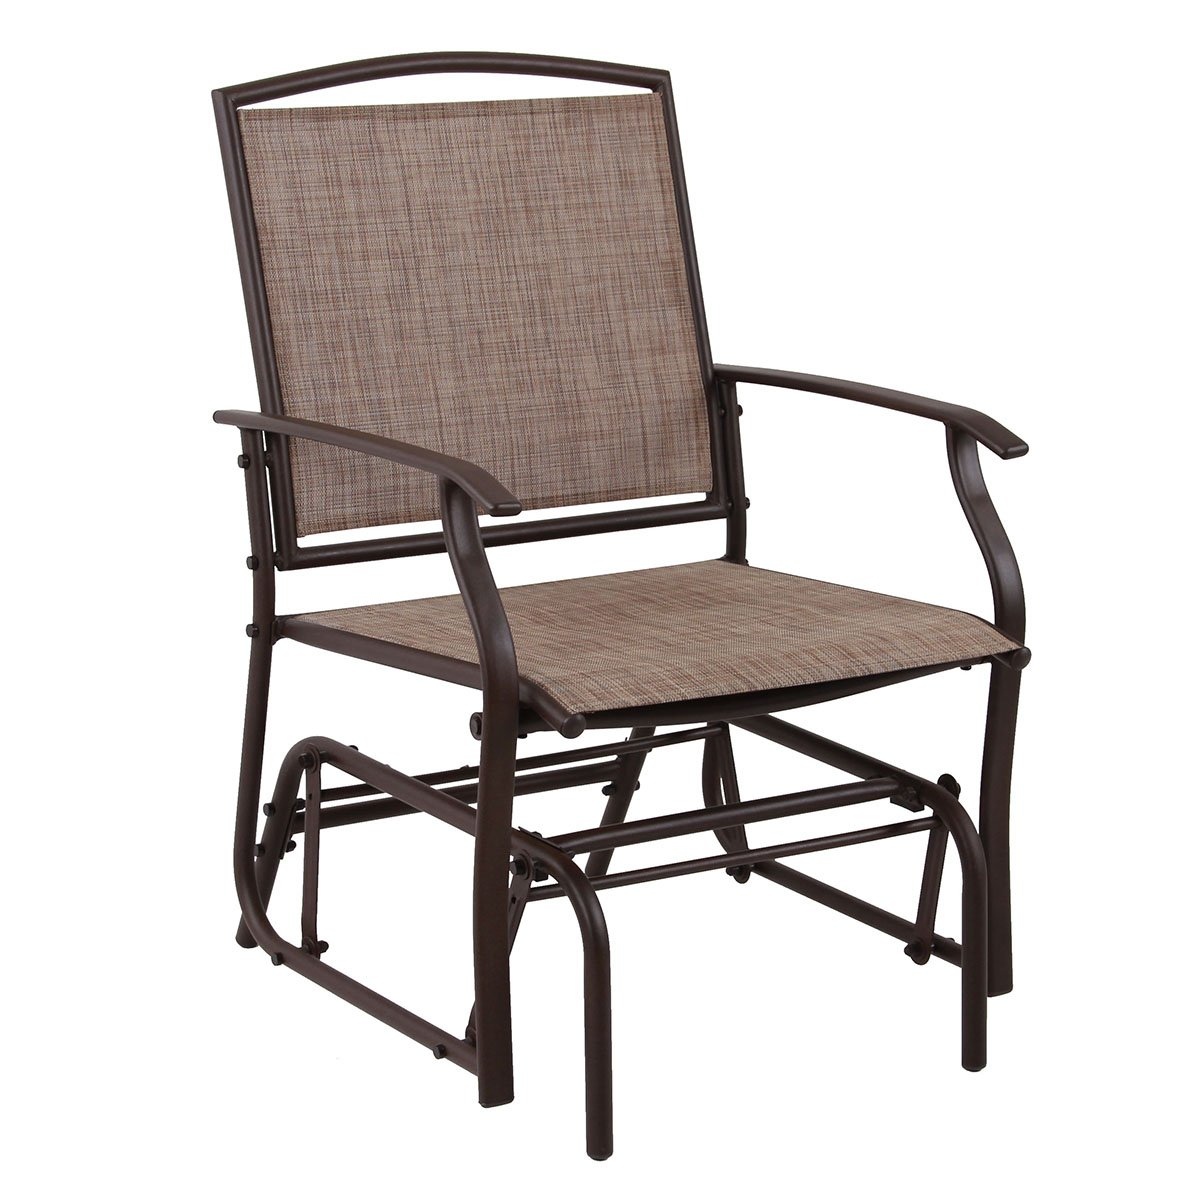 PHI VILLA Patio Glider Chair Outdoor Rocking Chair, Textilene Mesh Steel Frame,Brown